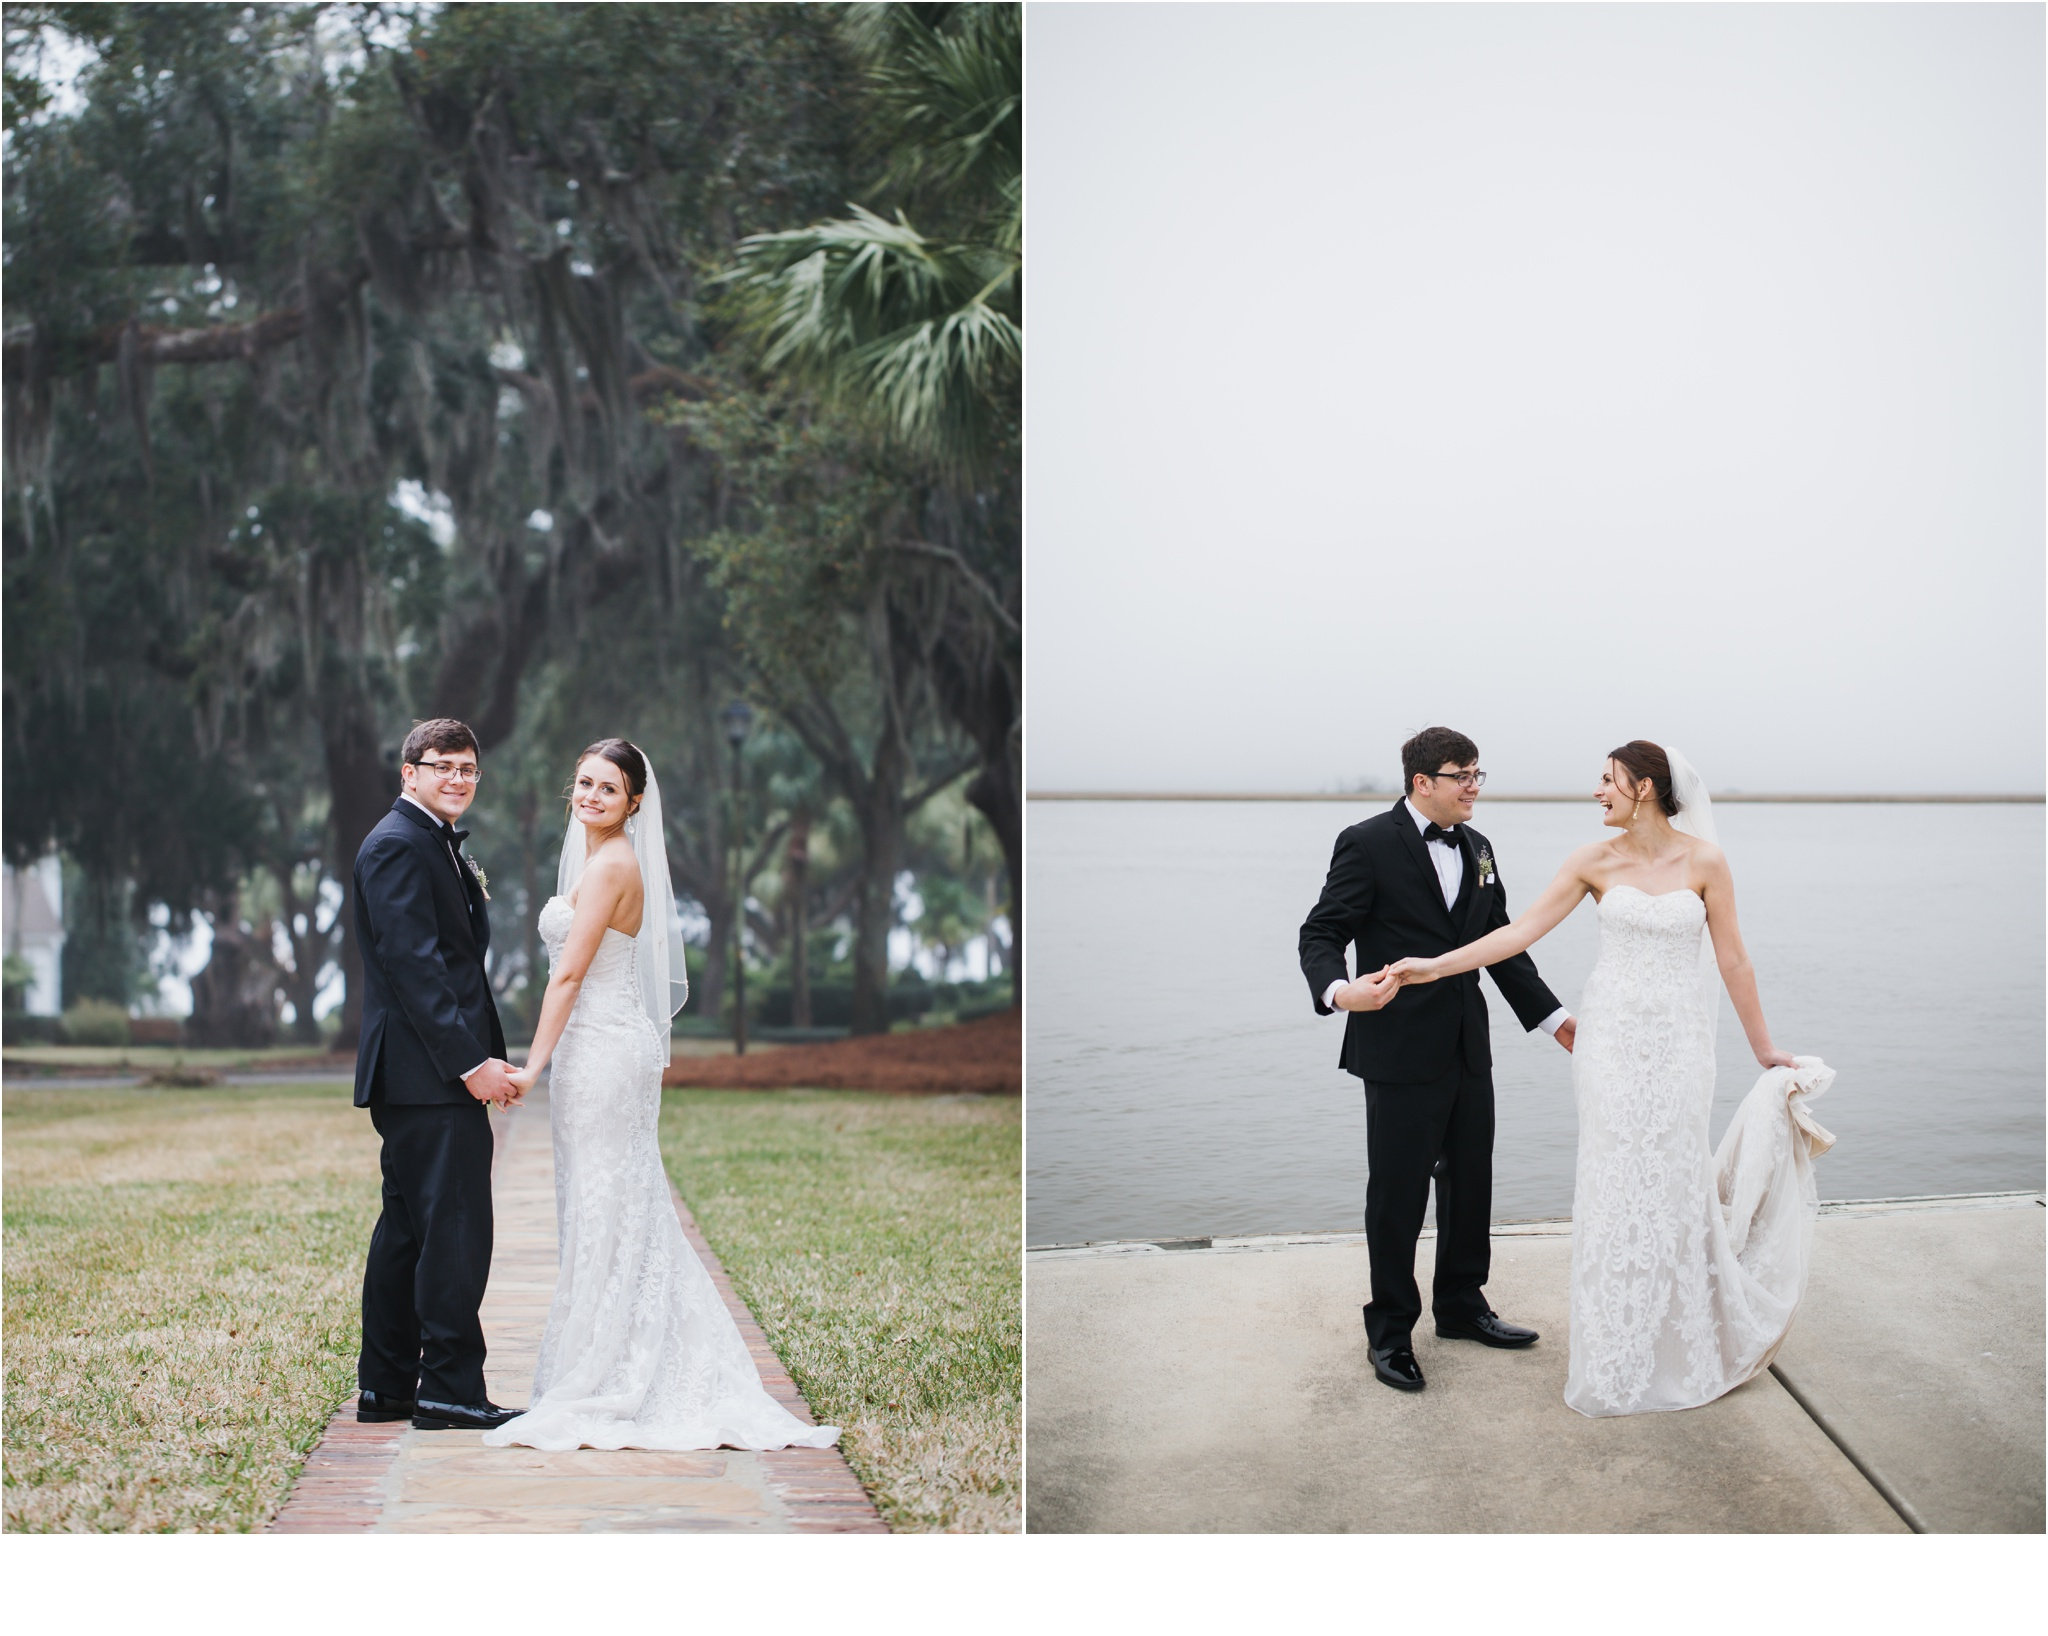 Rainey_Gregg_Photography_St._Simons_Island_Georgia_California_Wedding_Portrait_Photography_1716.jpg